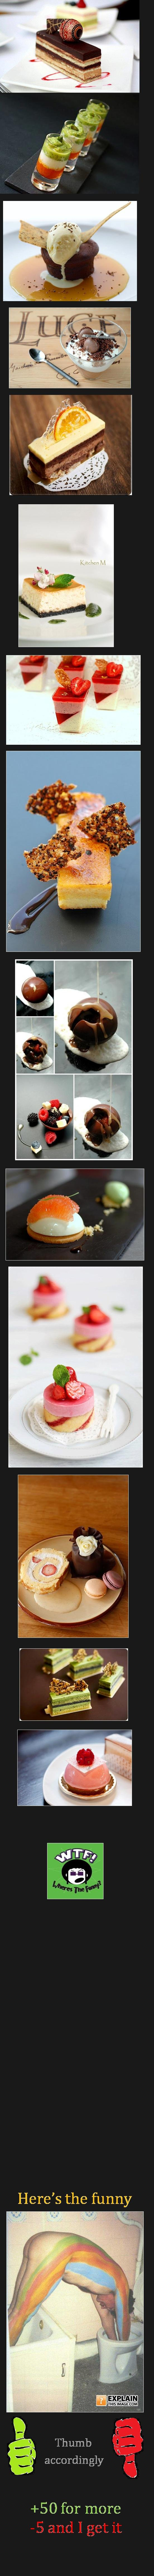 Awesome desserts. Deds to Mkitchen First ever post. go easy pwease new post: . for more. part 2 w